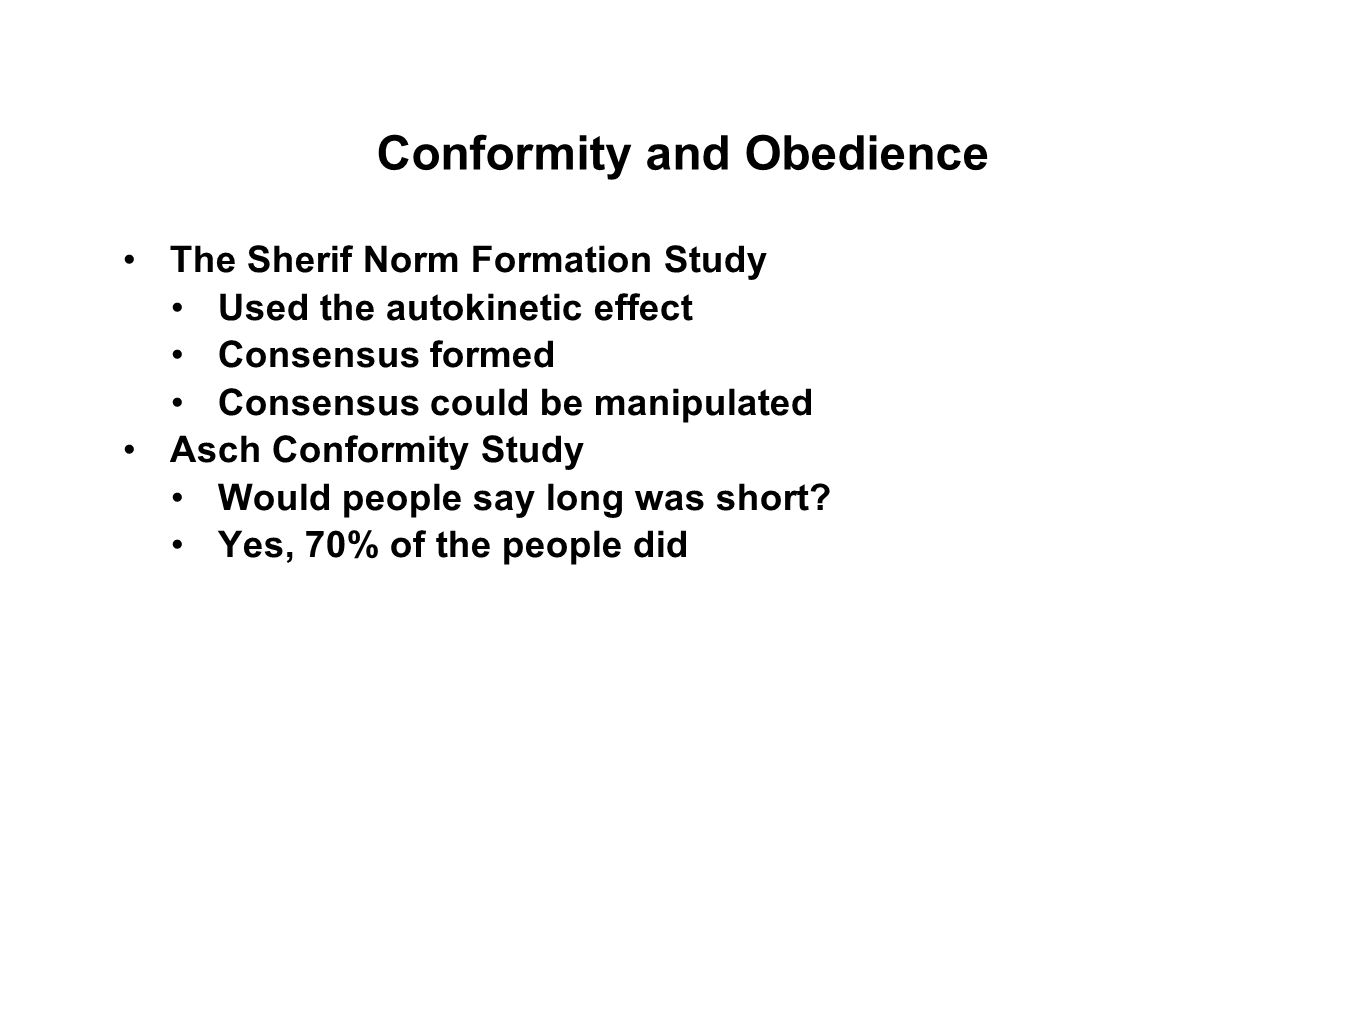 Conformity and Obedience The Sherif Norm Formation Study Used the autokinetic effect Consensus formed Consensus could be manipulated Asch Conformity Study Would people say long was short.